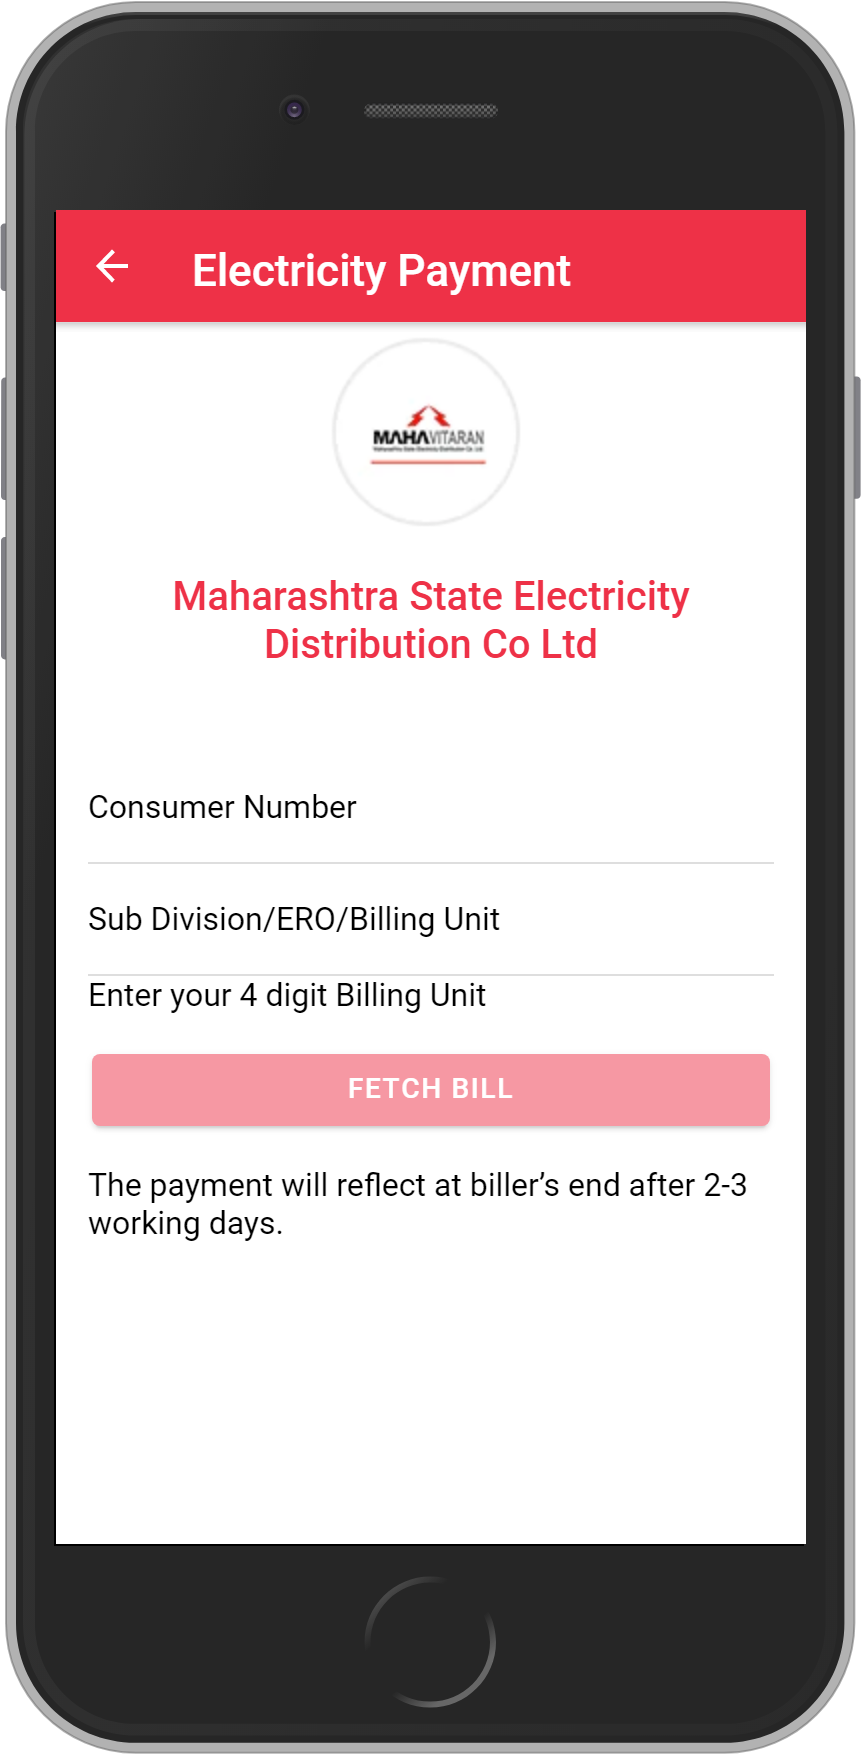 Get UNLIMITED <b>0.1%</b> CASHBACK on Maharashtra State Electricity Distribution Company Limited Bill Payment.